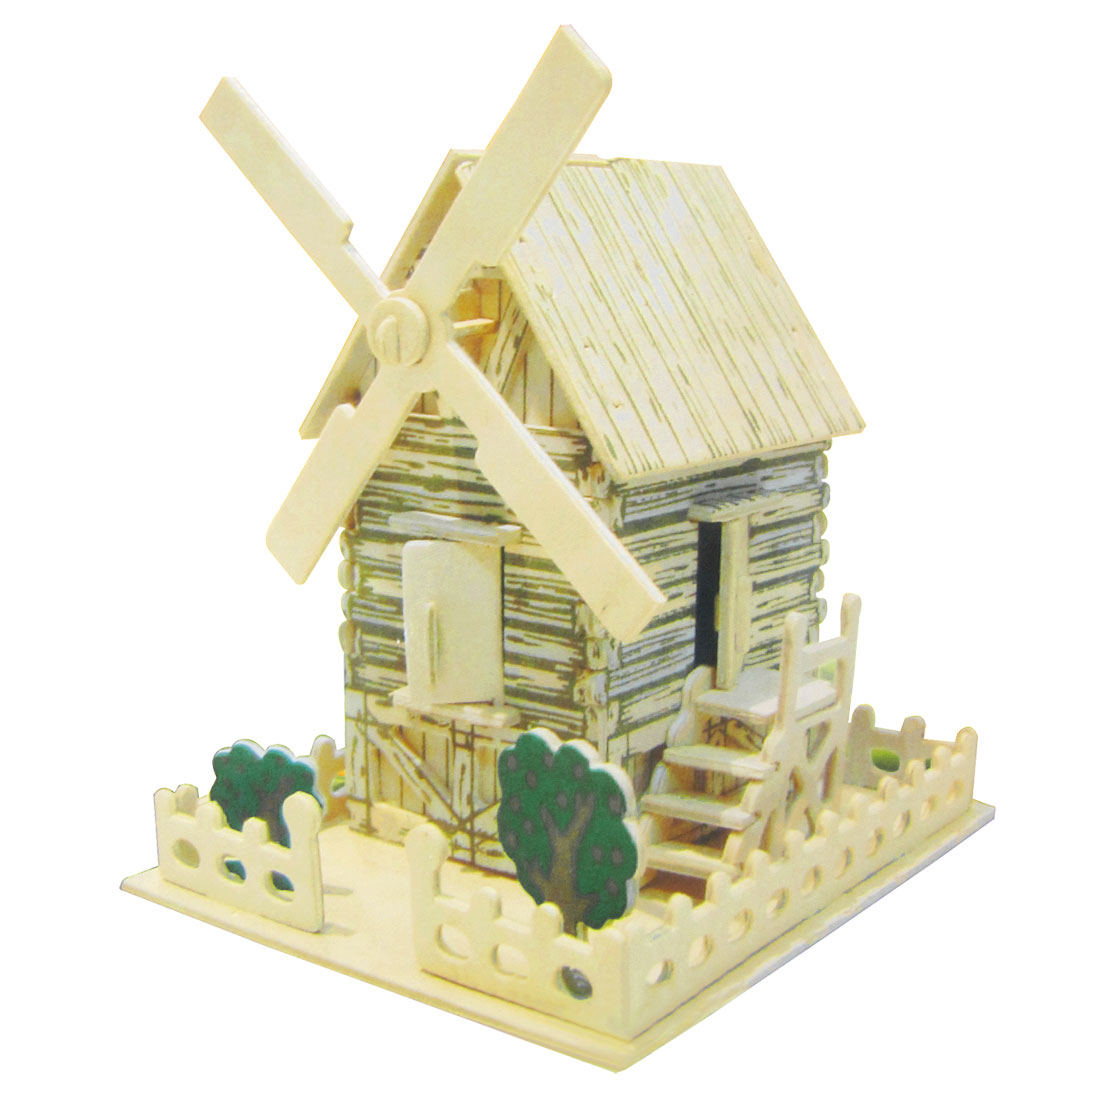 Children Puzzled 3D Wooden Country Windmill Model Woodcraft Construction Kit